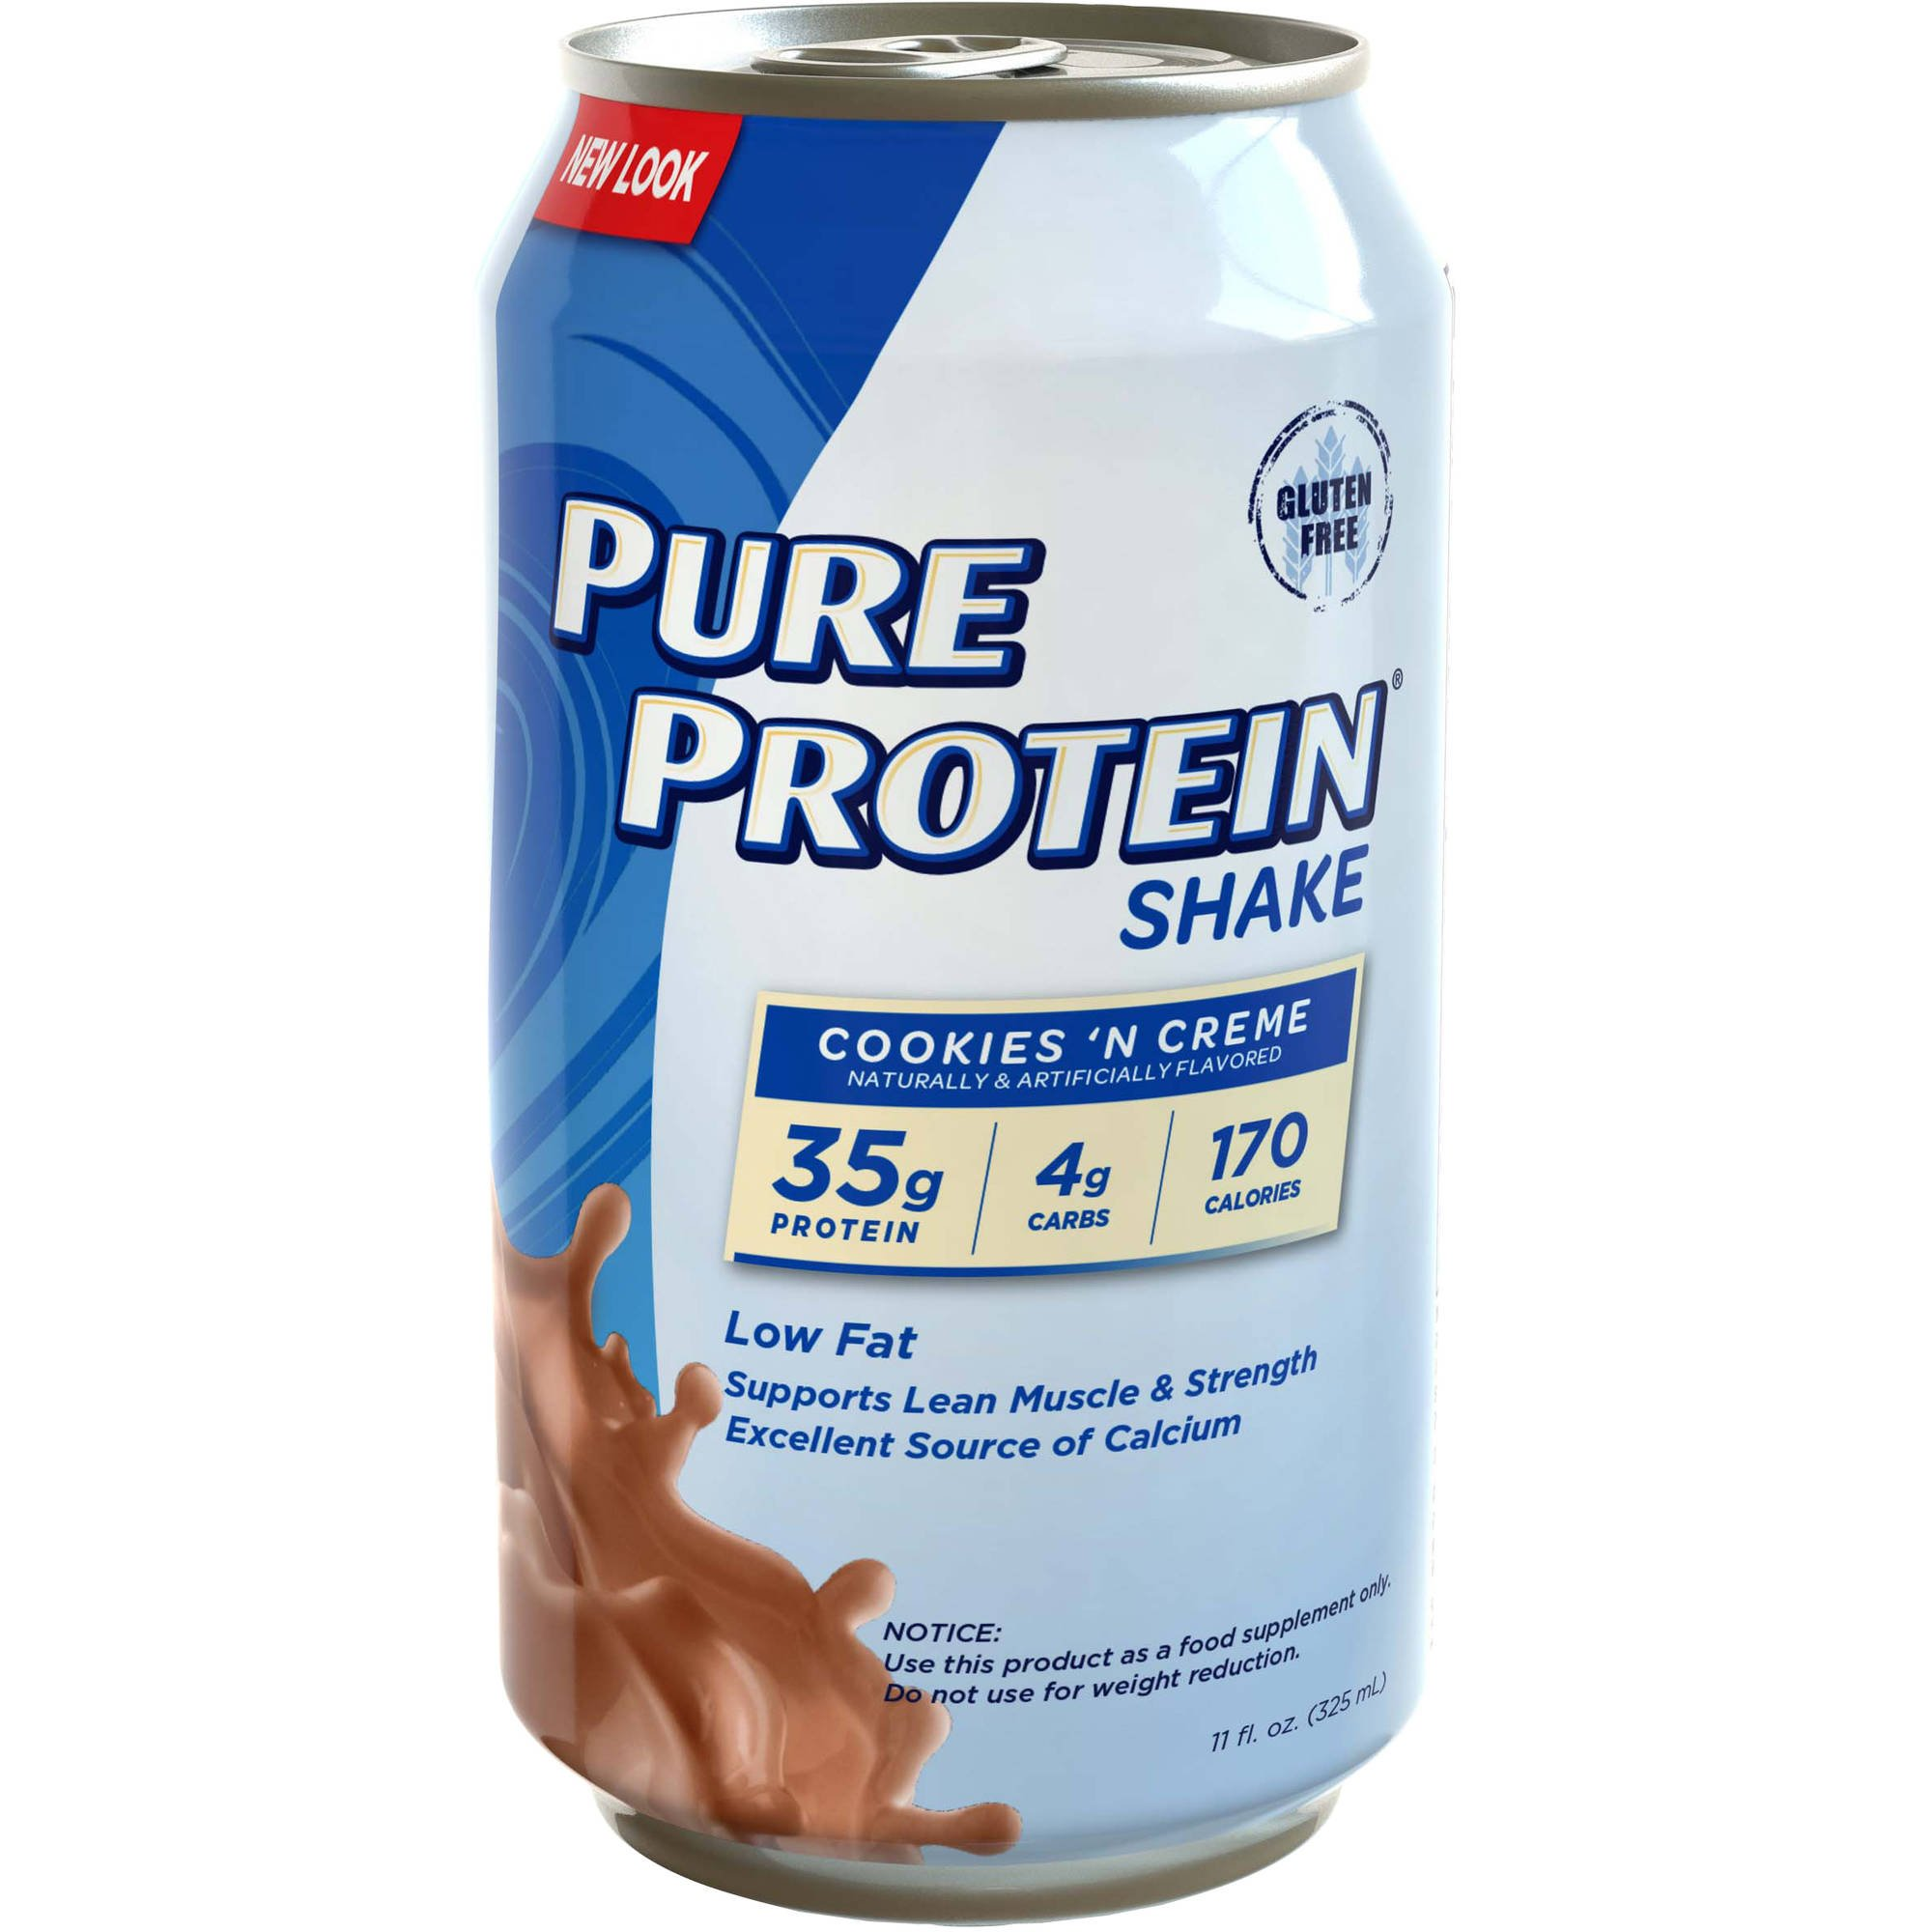 Pure Protein 35g Shake - Cookies & Creme, 11 Ounce (Pack of 24)